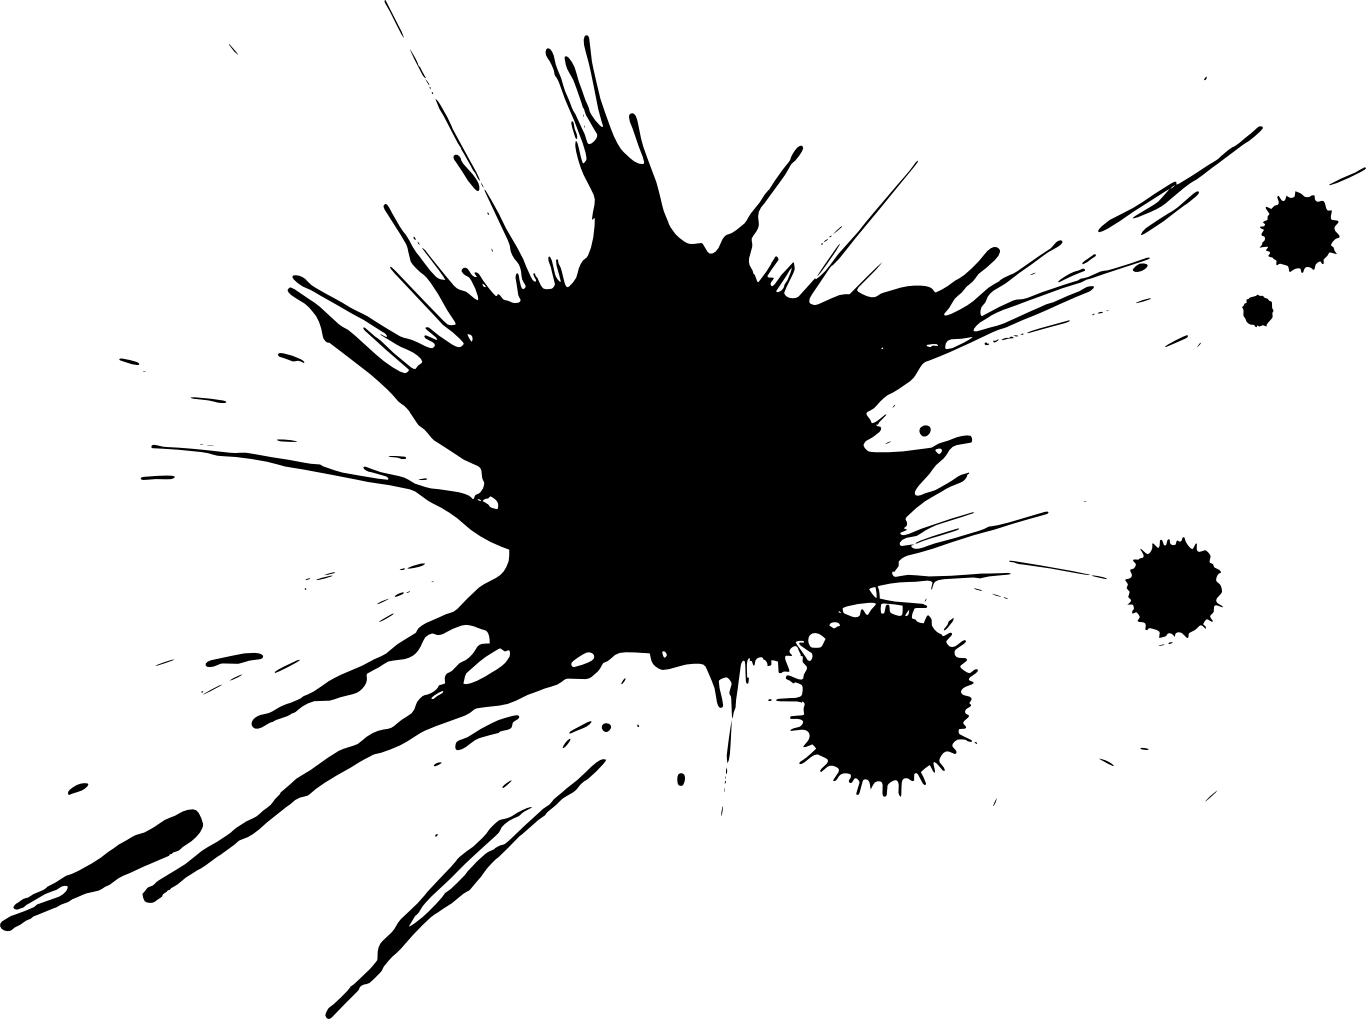 Black paint splatter png. Splatters transparent onlygfx